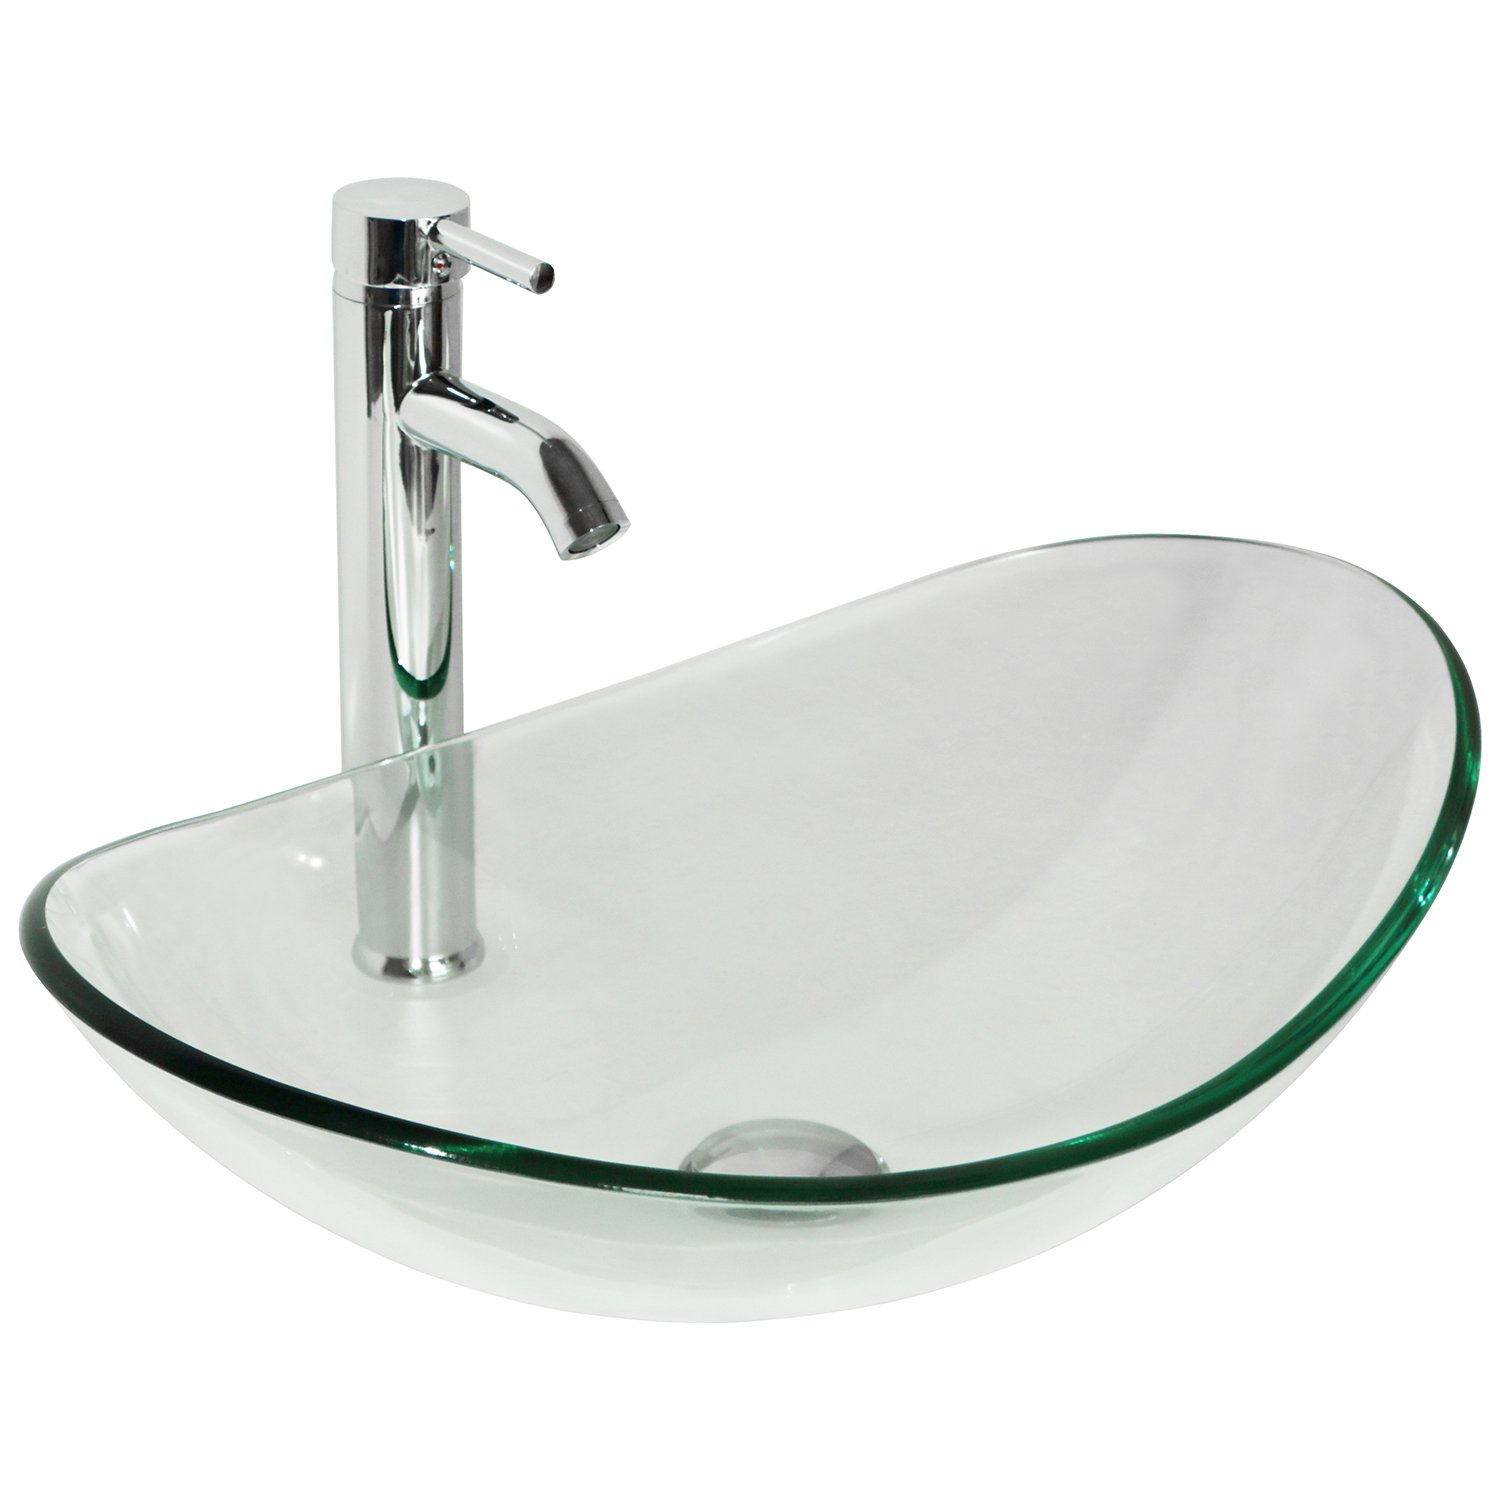 Walcut Green Light Series Boat Temepered Glass Vessel Sink Bath Sink Bowl Set by WALCUT